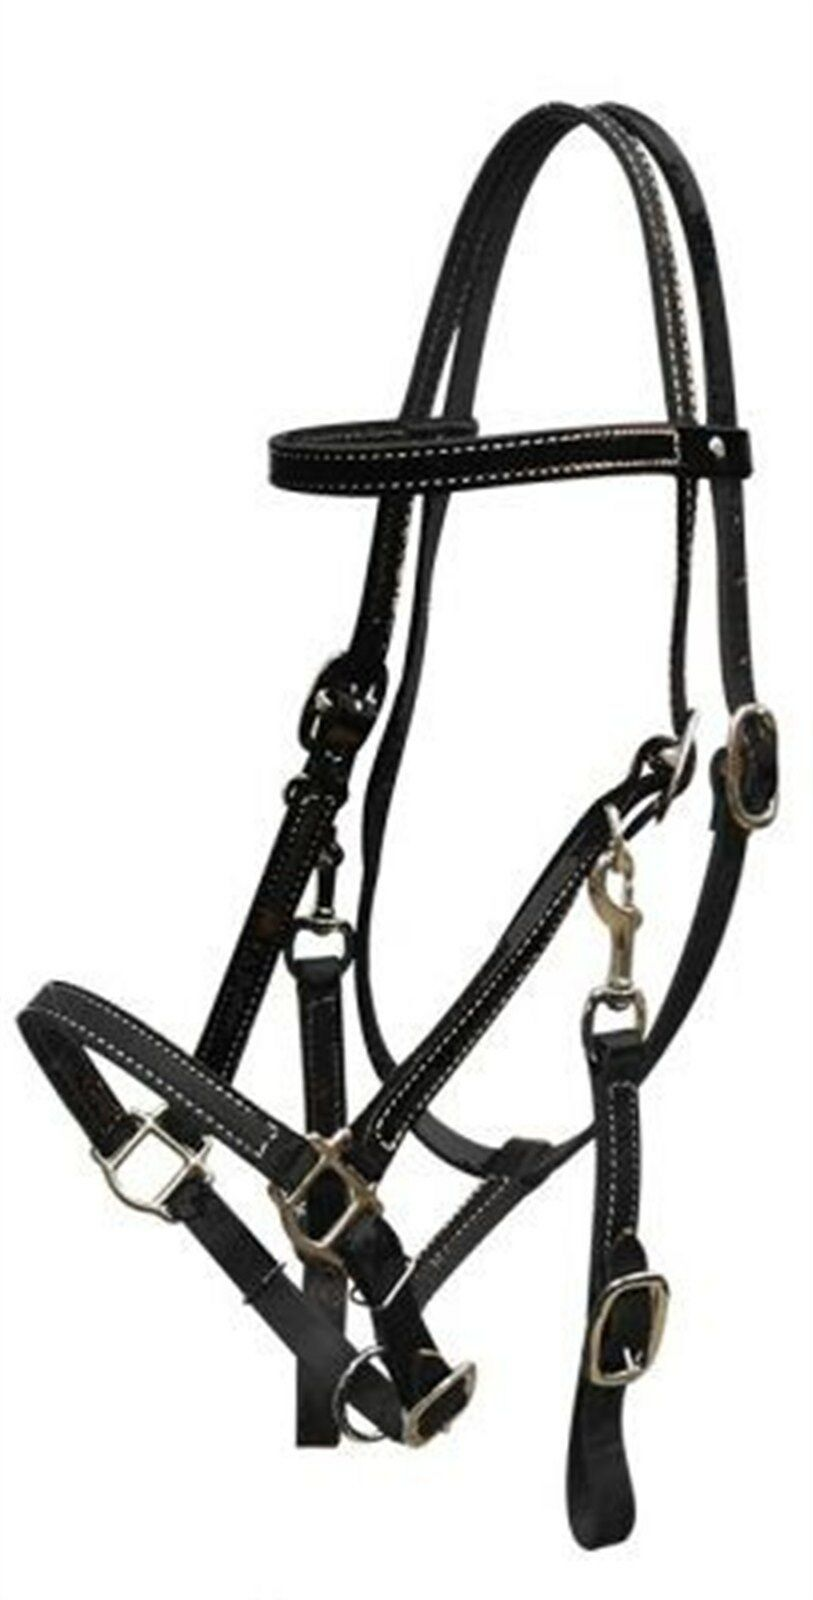 BLACK Leather Horse Halter Bridle Combination with Reins